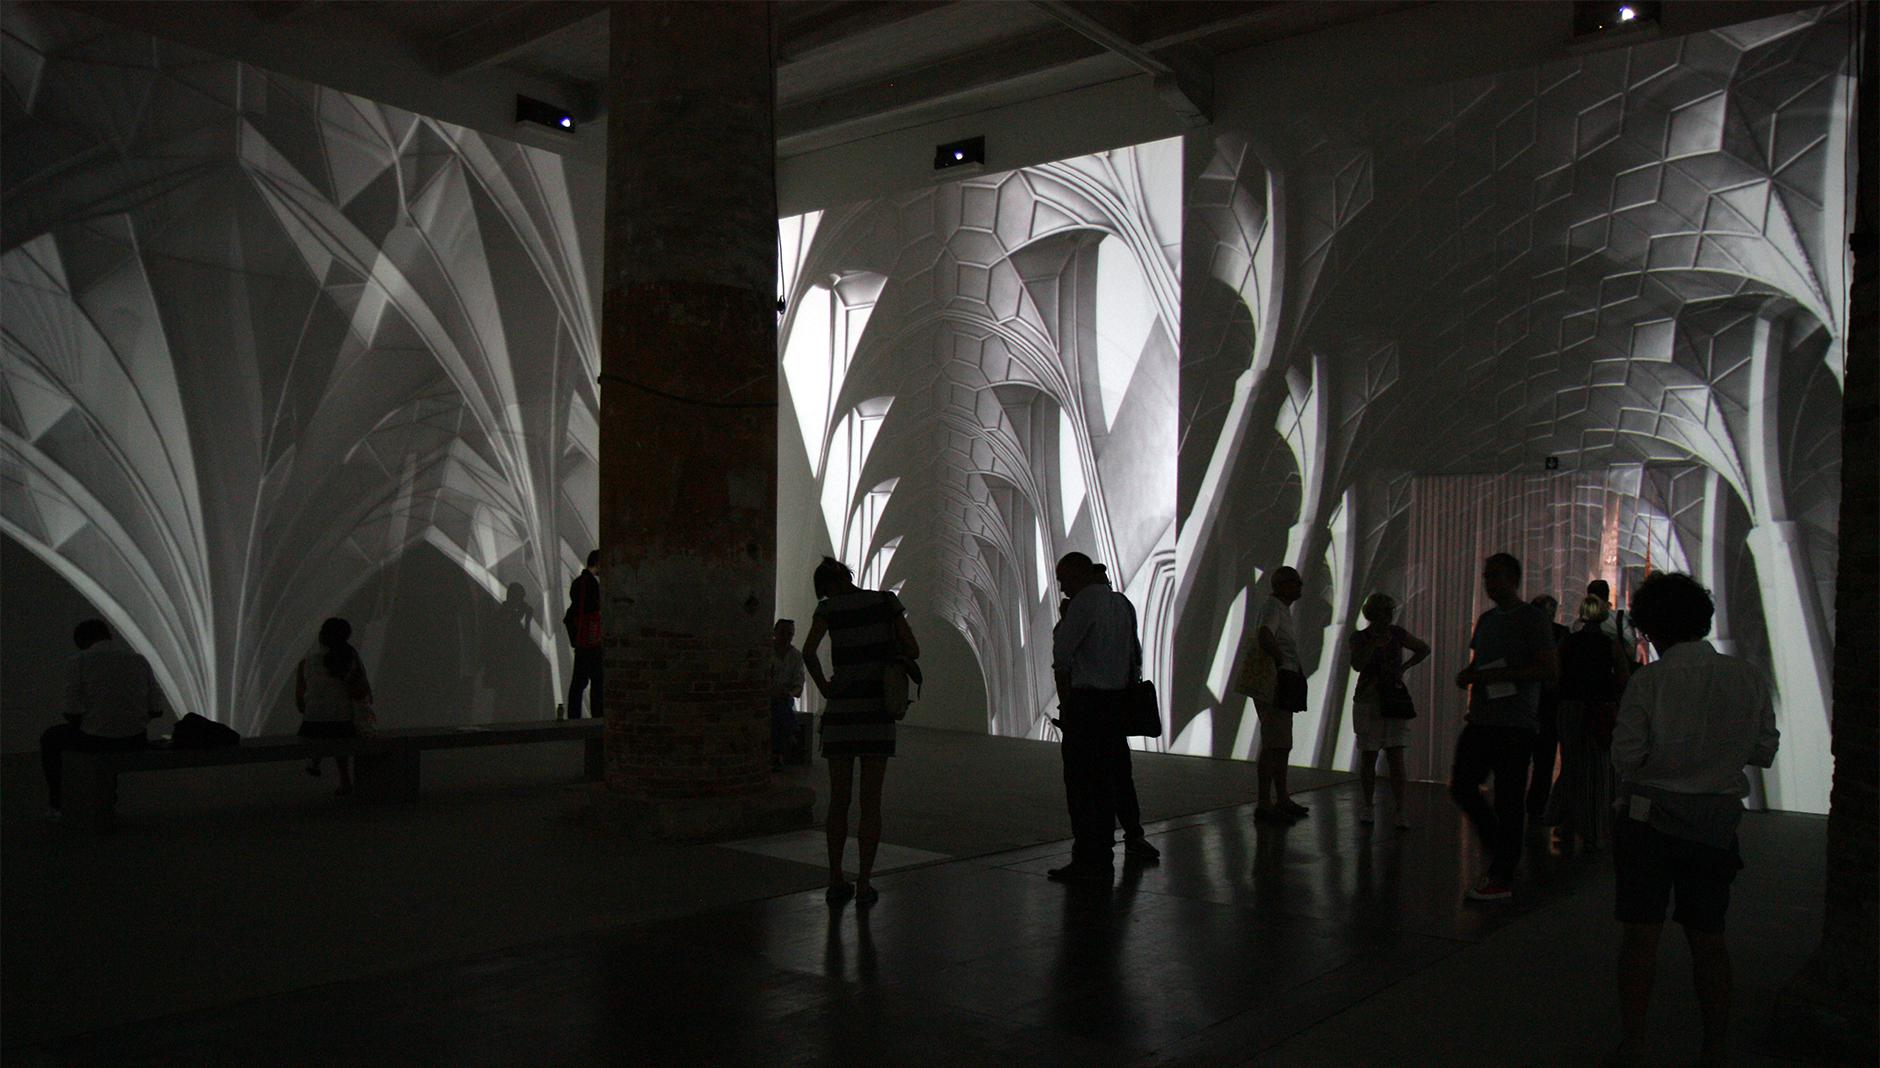 Common Ground At The Venice Architecture Biennale